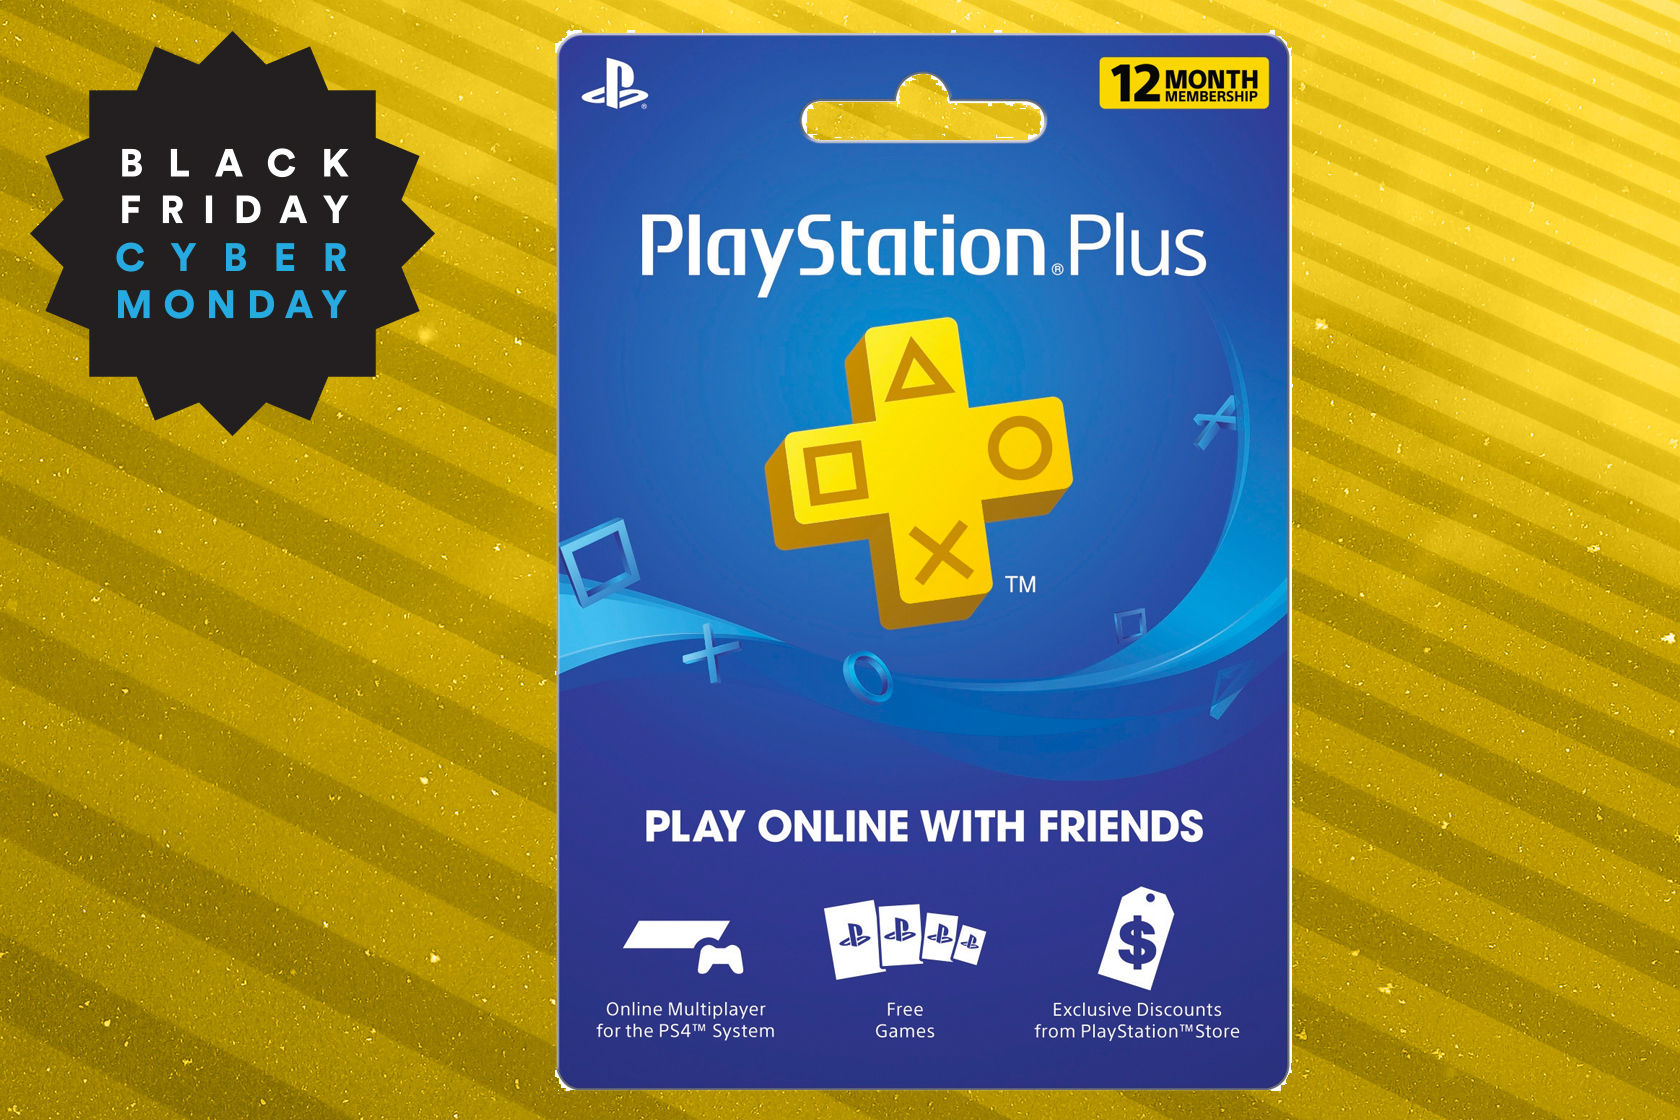 Get 12 months of PlayStation Plus for just $45 at Walmart